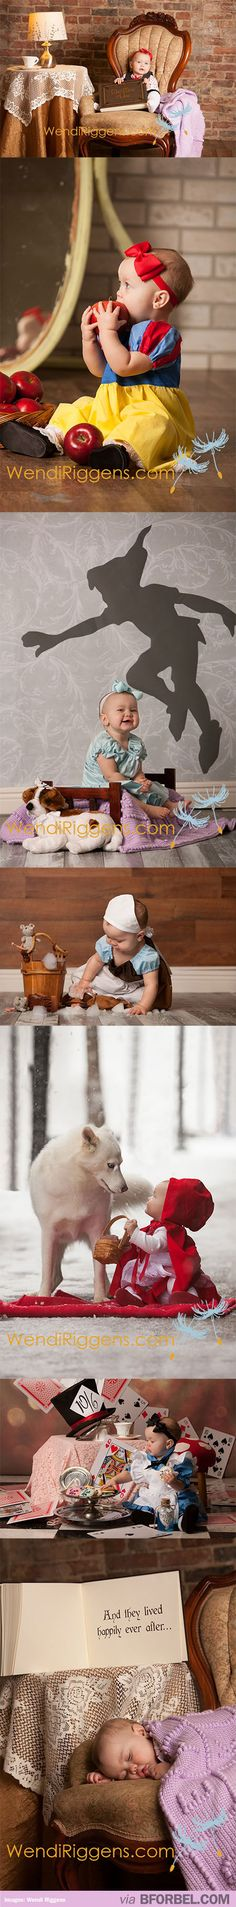 What an adorable disney baby photo shoot idea!  At first, she's reading the fairytale book then it shows her in each character for each one!  Last picture shows her asleep after all of her adventure!  So cute!